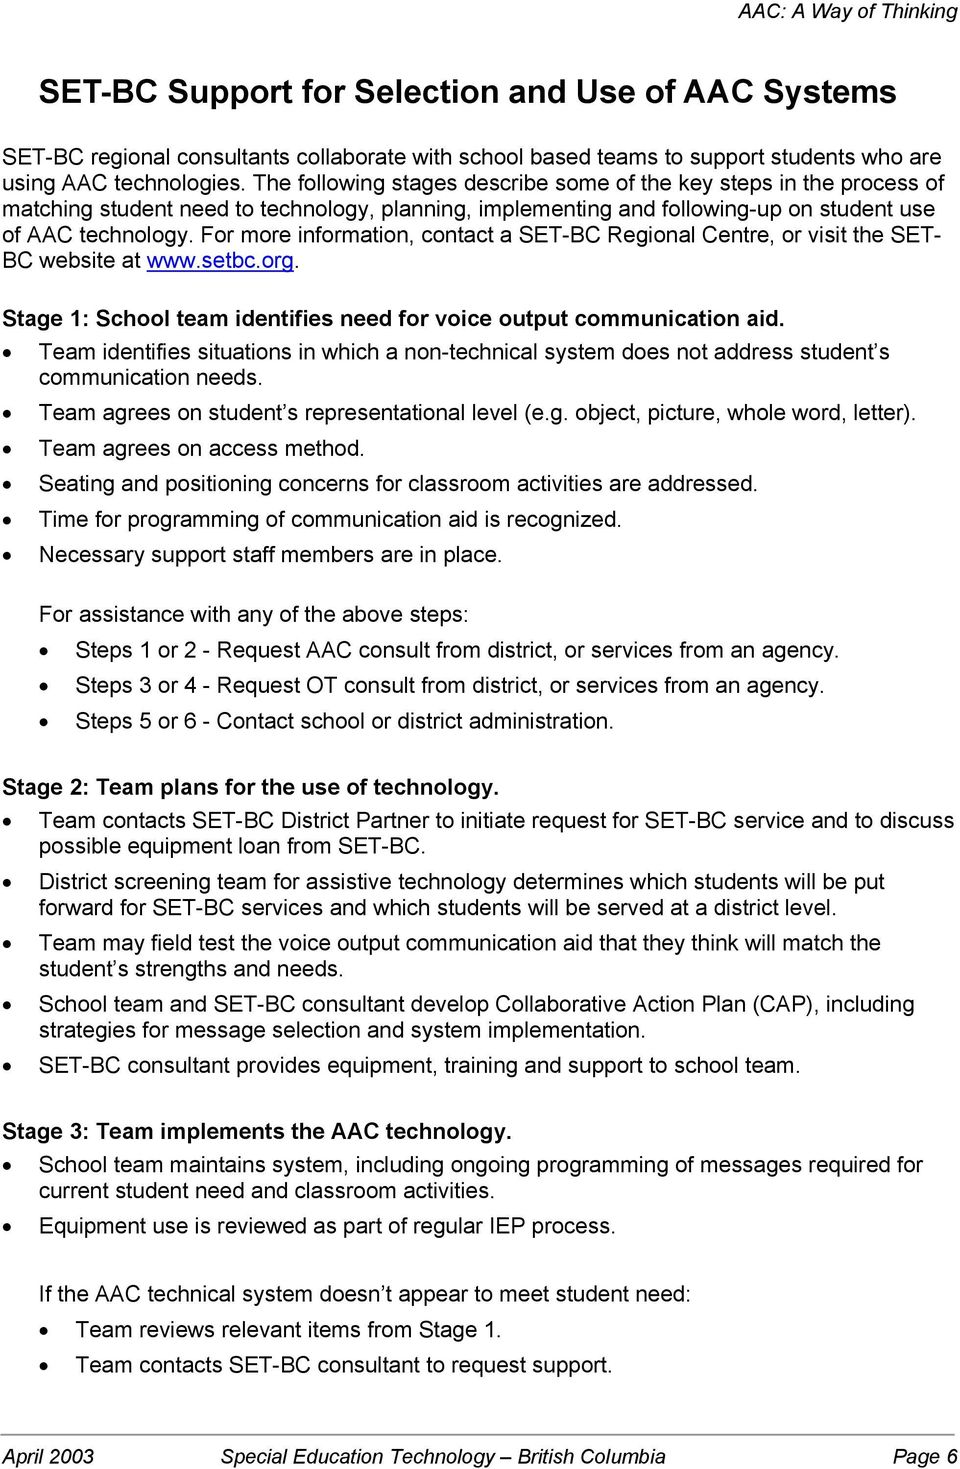 For more information, contact a SET-BC Regional Centre, or visit the SET- BC website at www.setbc.org. Stage 1: School team identifies need for voice output communication aid.